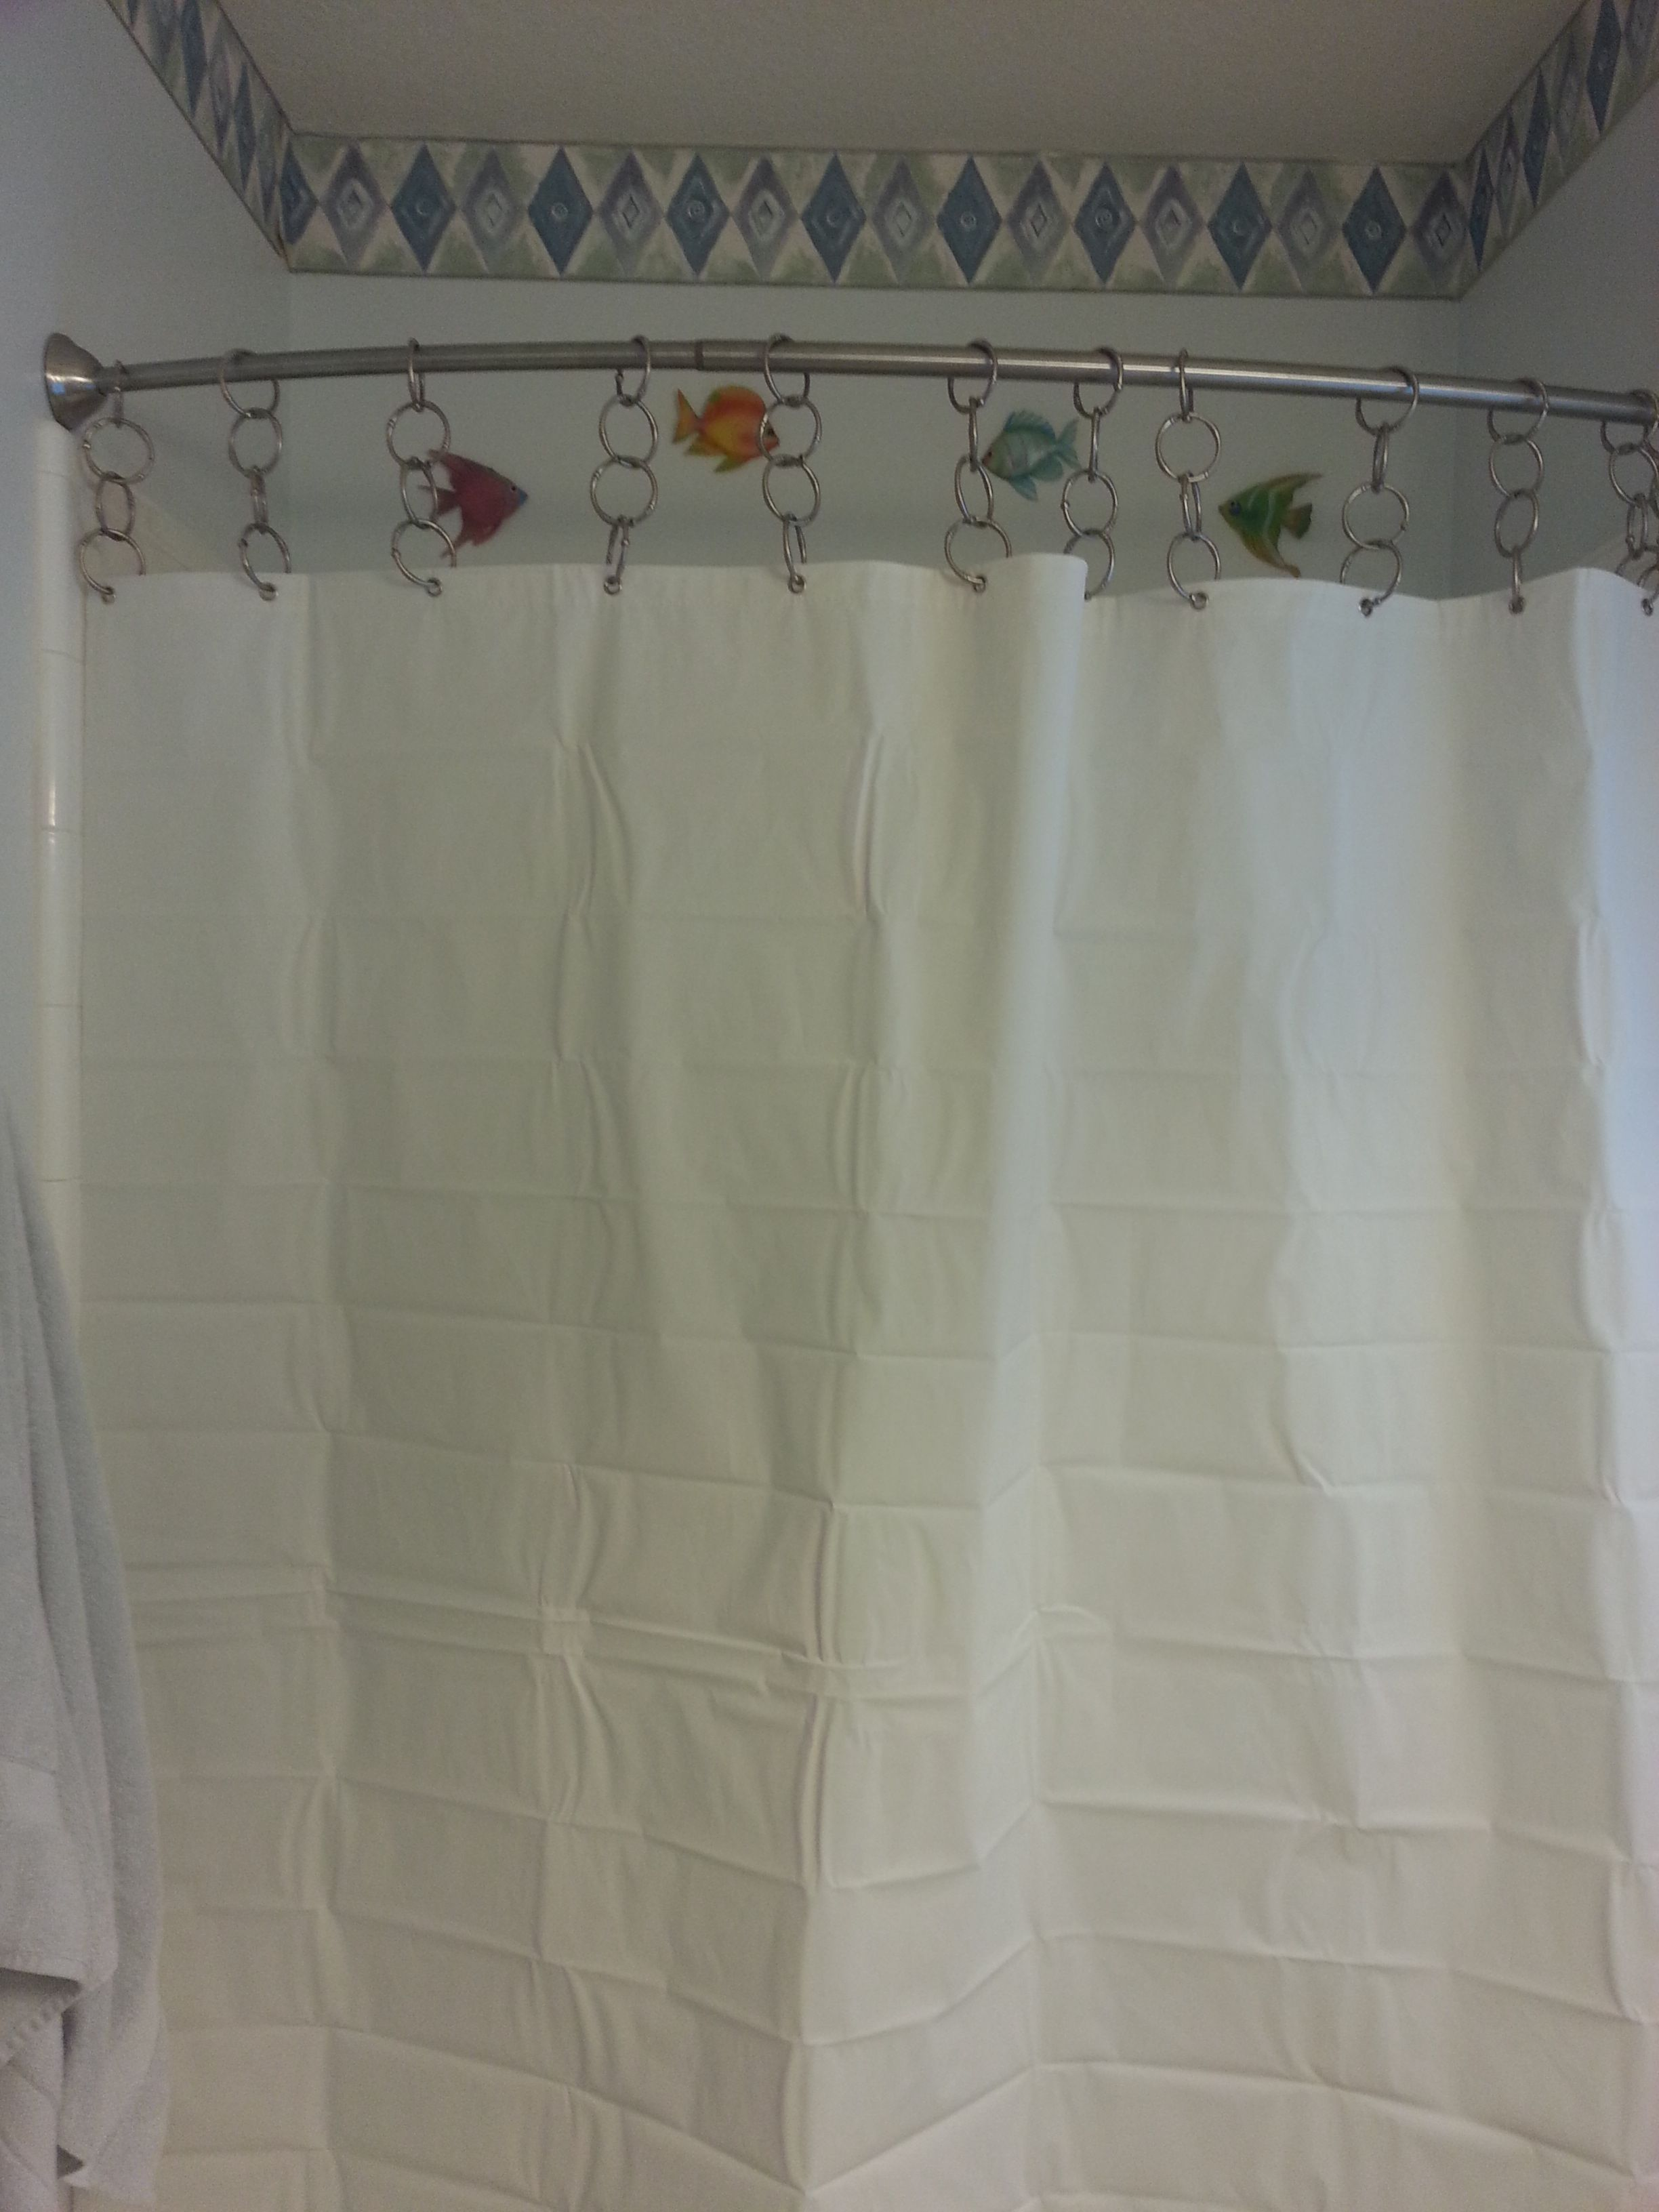 Shower Rod Curtain Rings